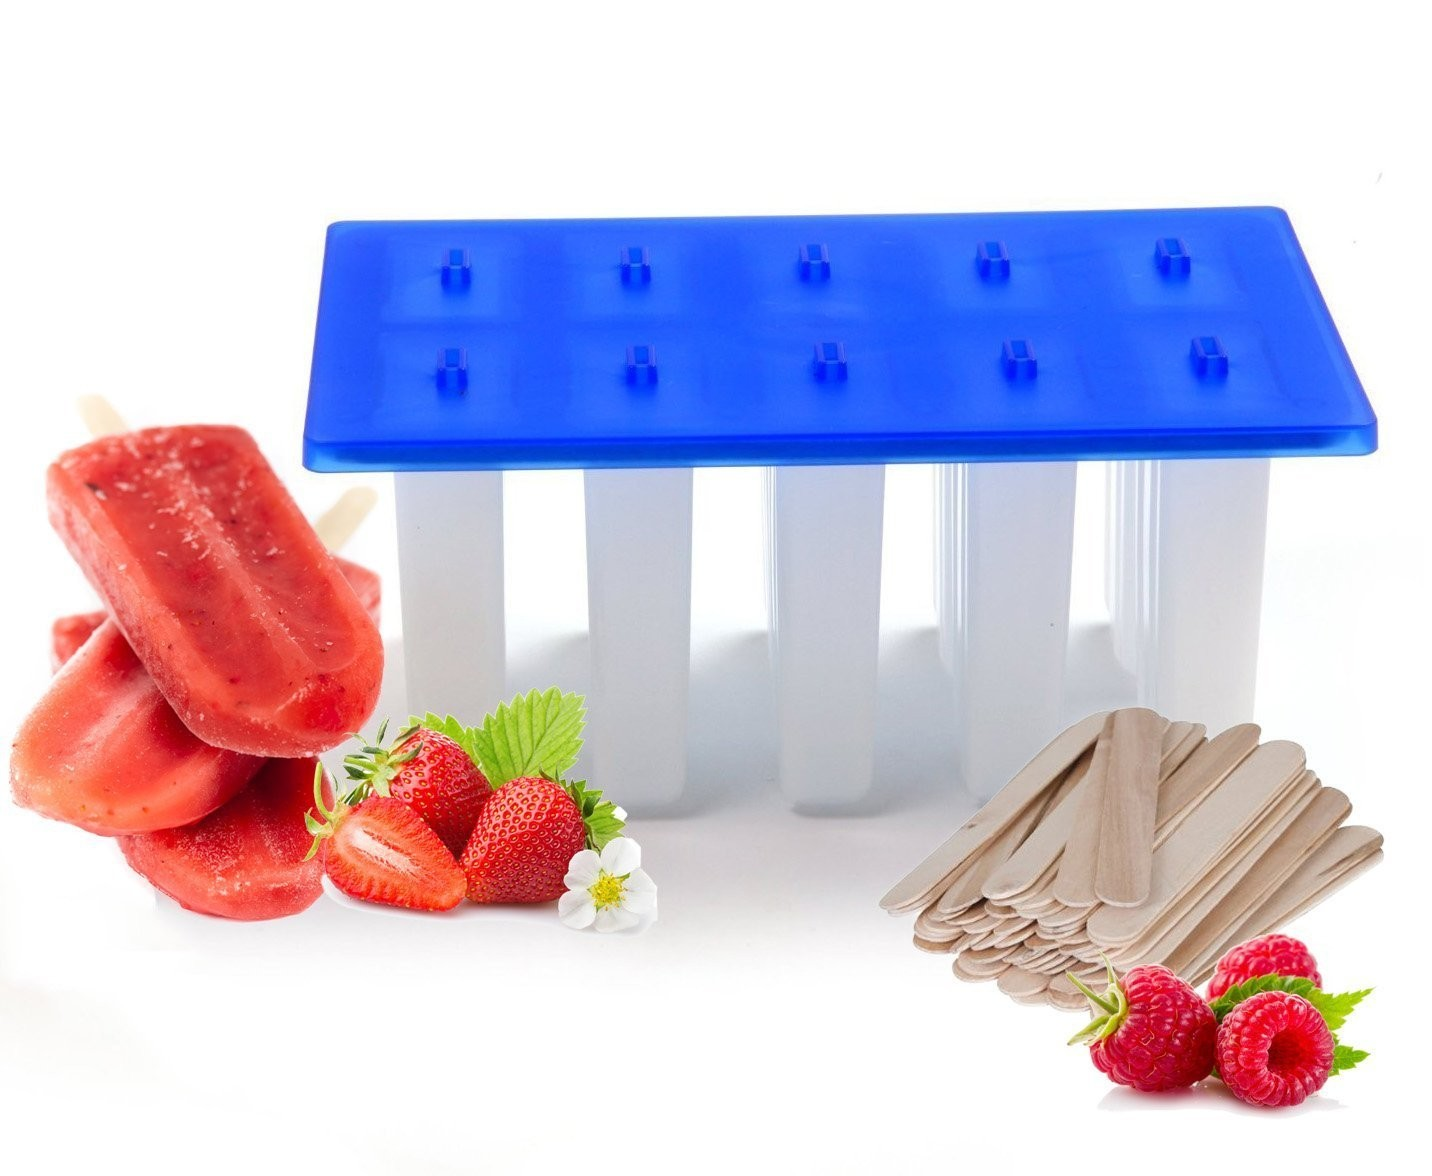 TigerChef 10-Section Popsicle Mold with 200 Popsicle Sticks